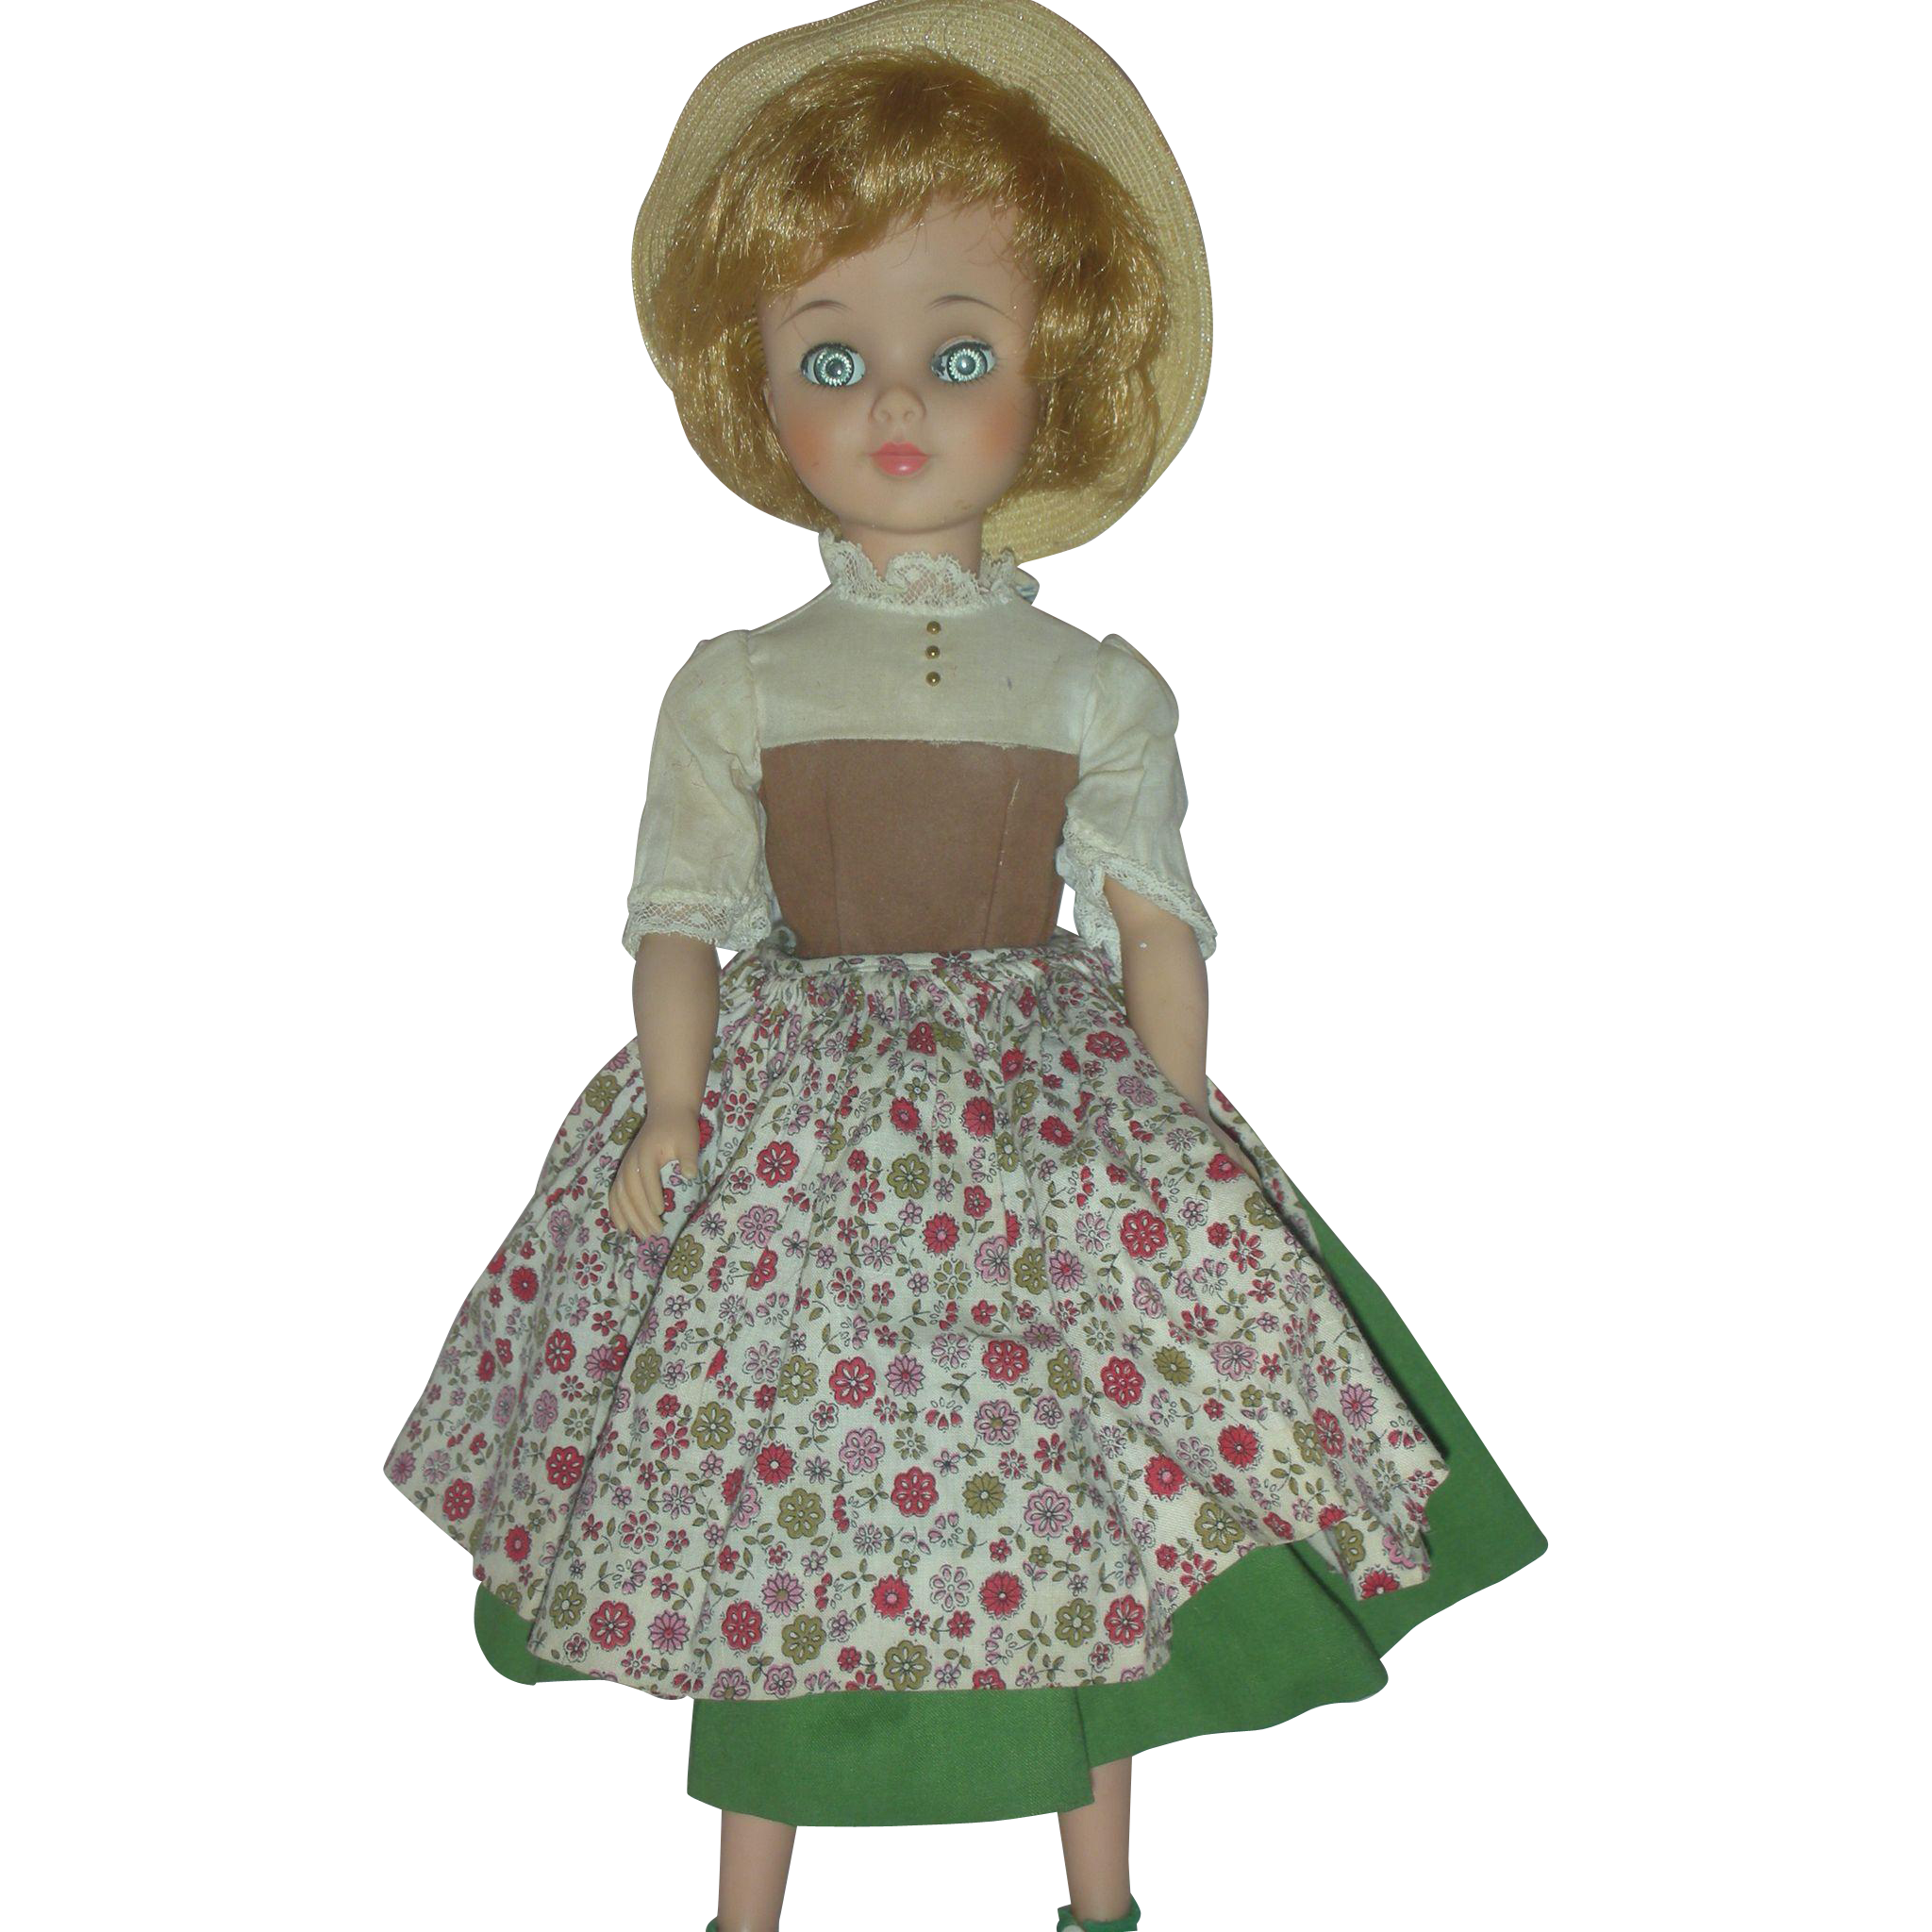 Vintage Madame Alexander Maria Doll from Sound of Music